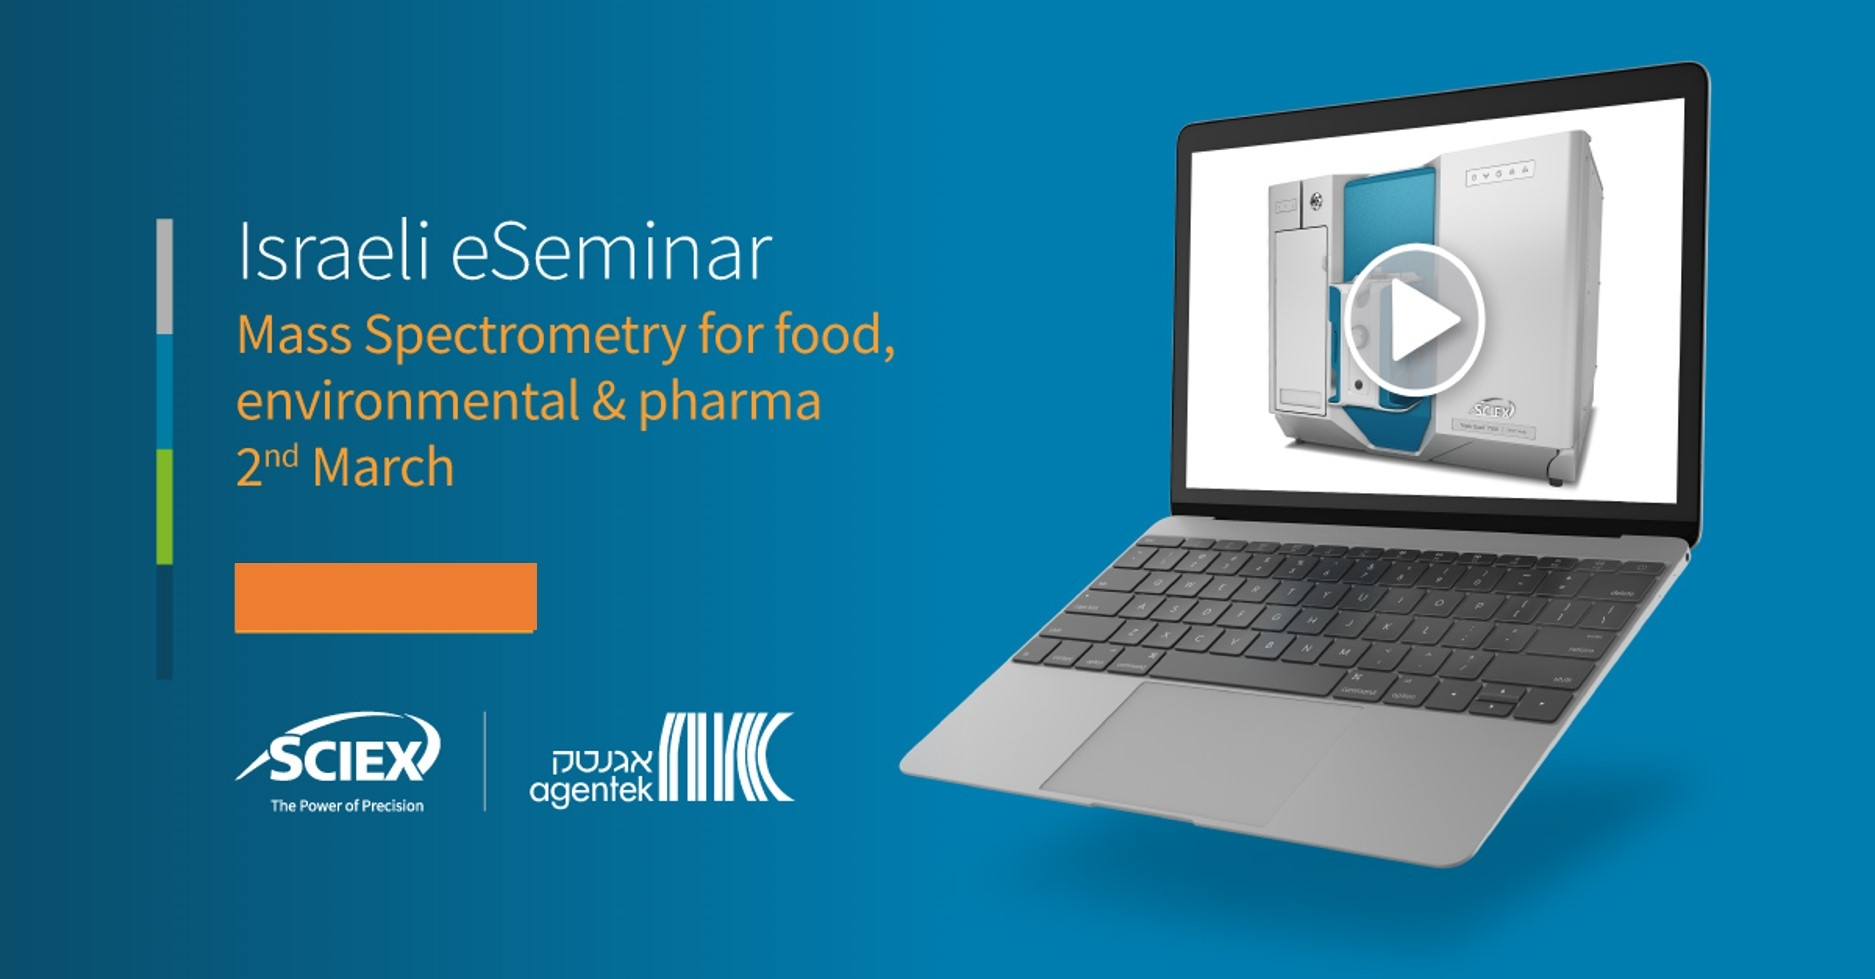 Thank you for joining us for Sciex e-Seminar on MS Spectrometry for food, environmental and pharma